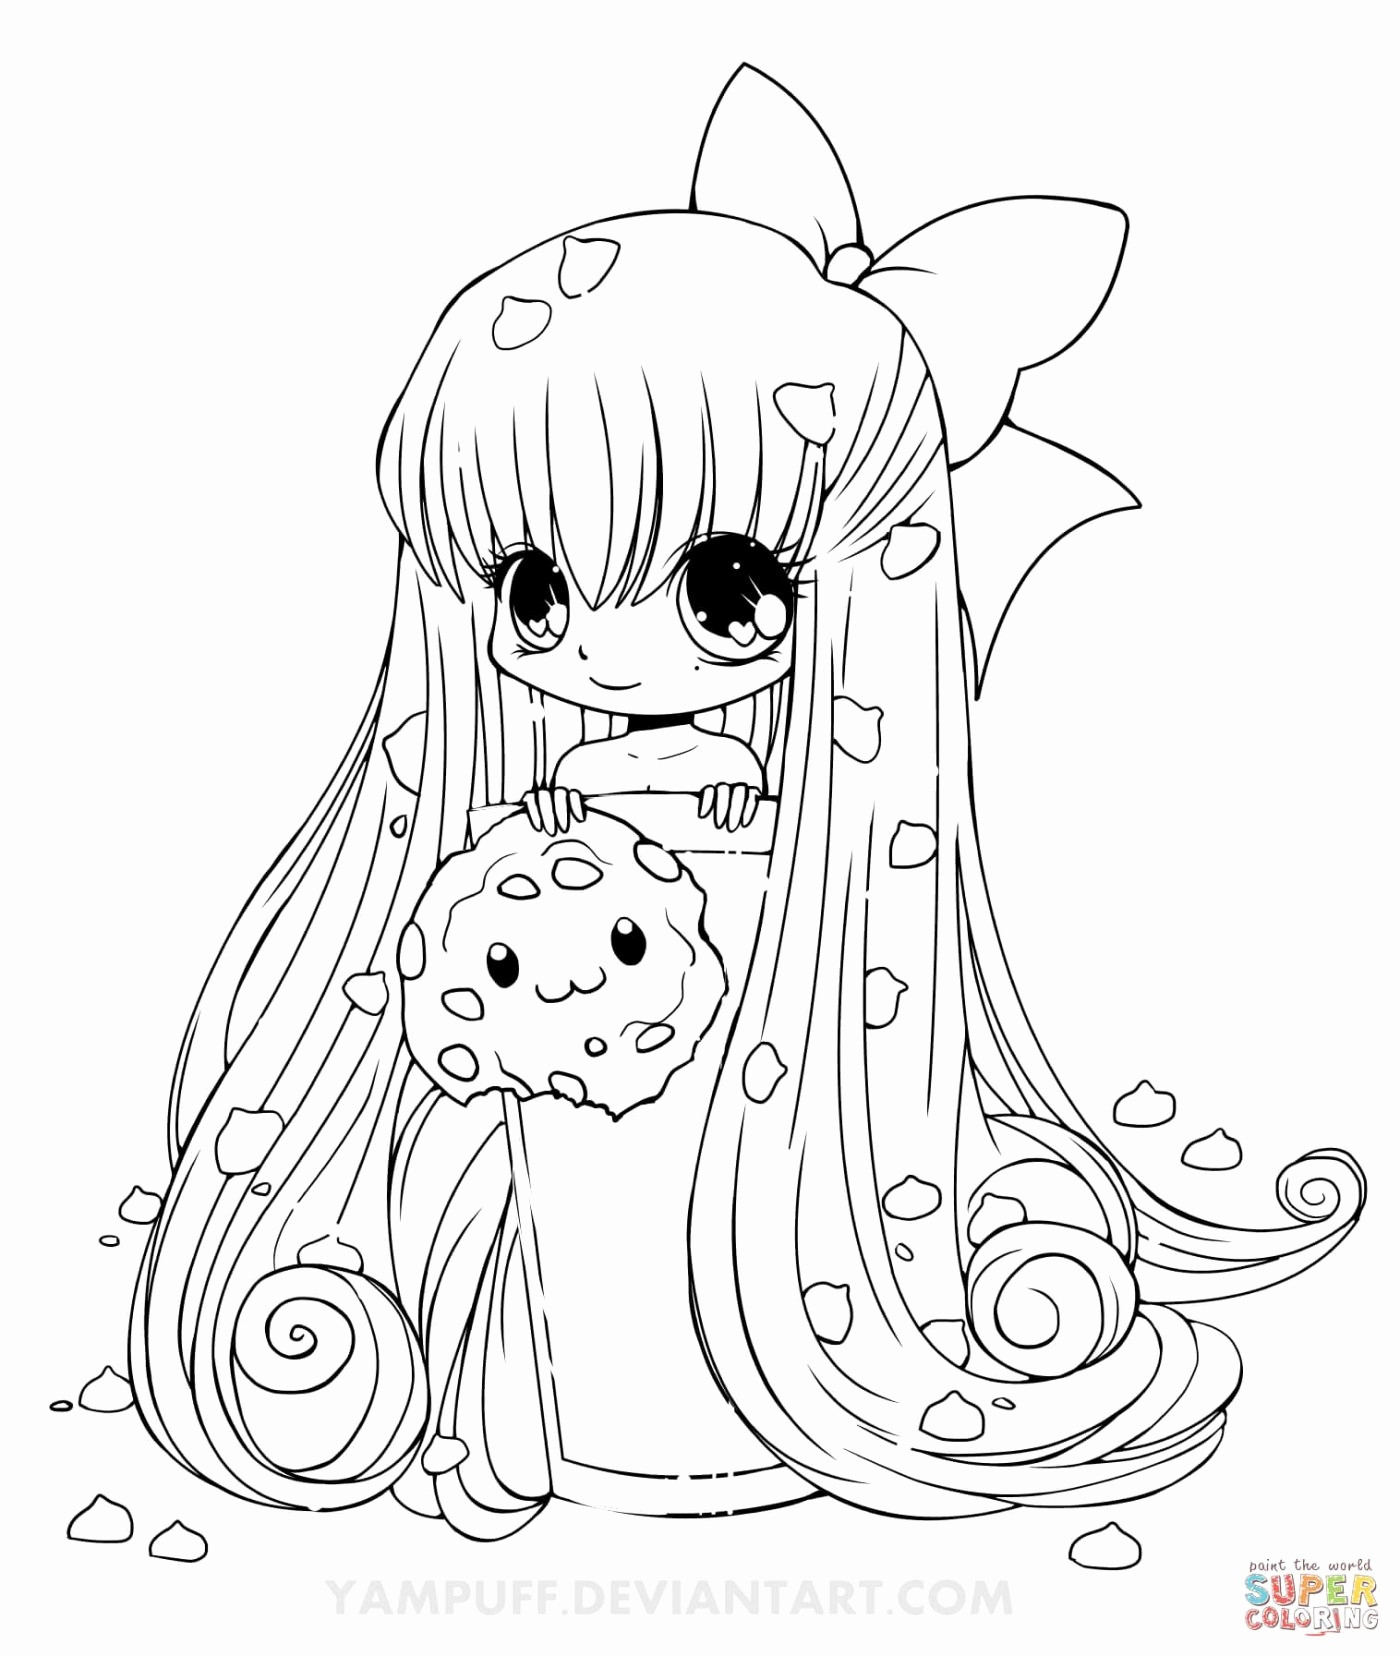 Trends For Kawaii Cute Chibi Coloring Pages | Sugar And Spice